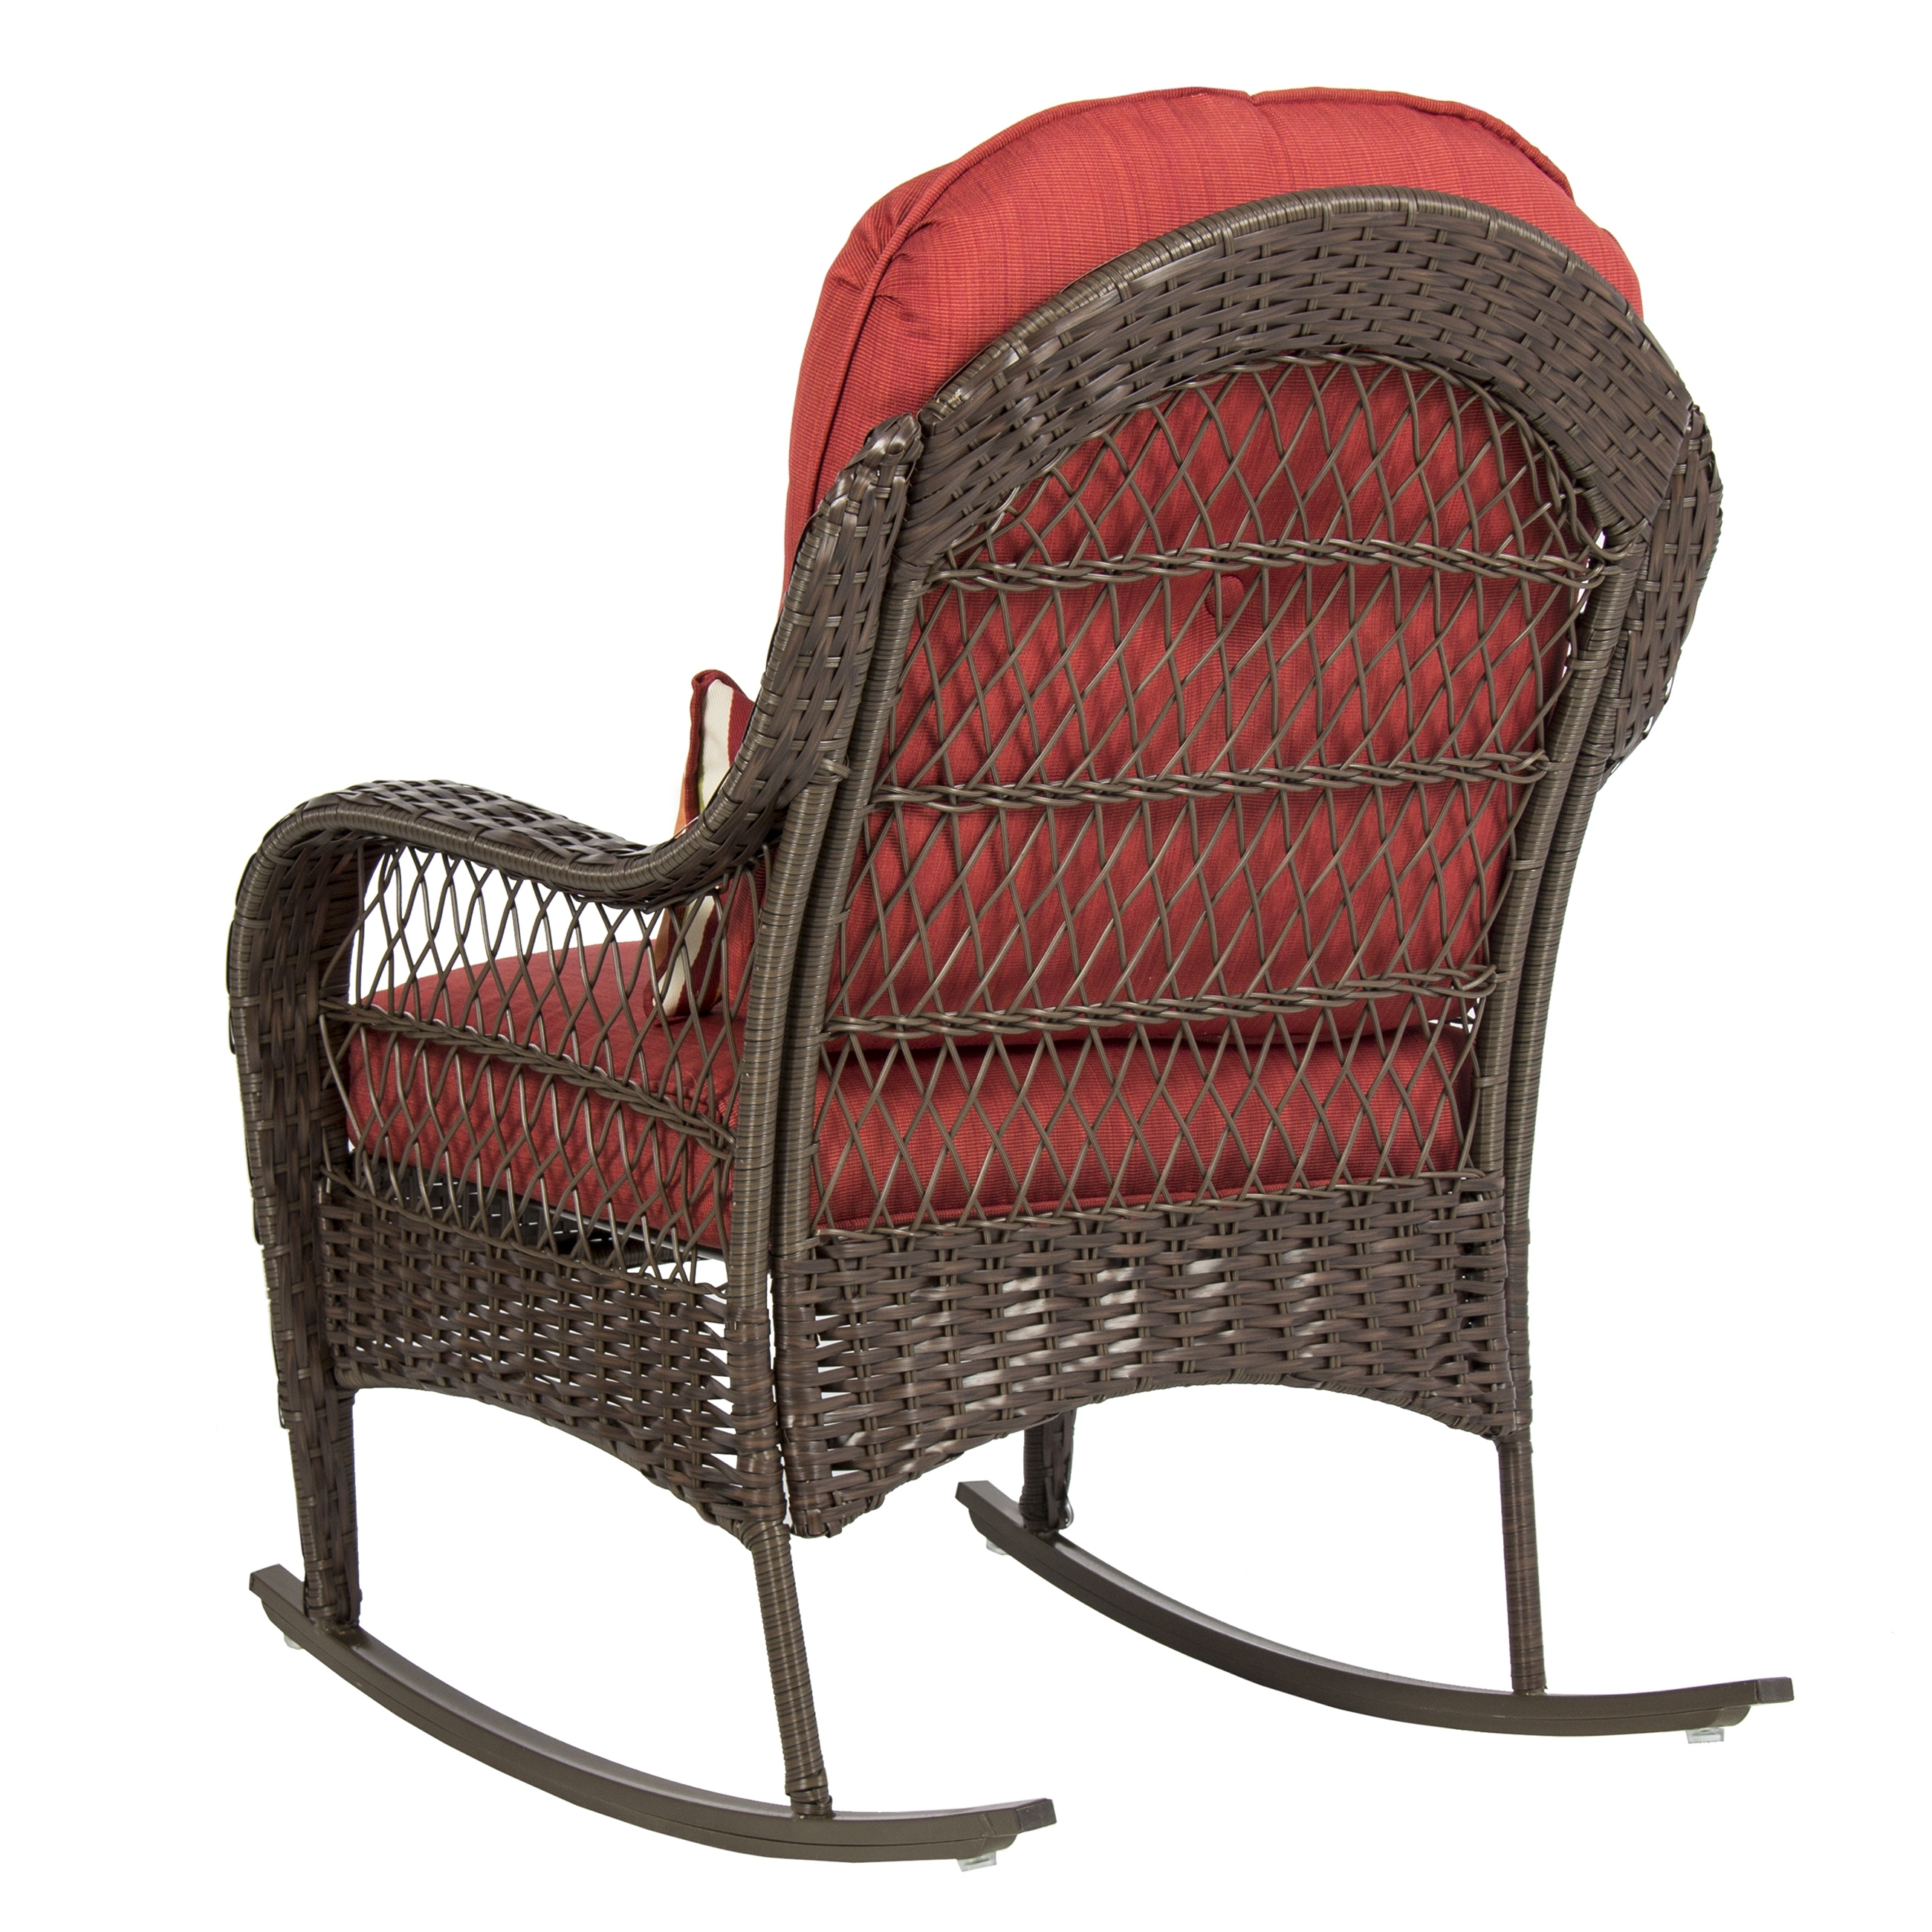 Wicker Rocking Chairs With Cushions With Latest Best Choice Products Wicker Rocking Chair Patio Porch Deck Furniture (View 6 of 15)